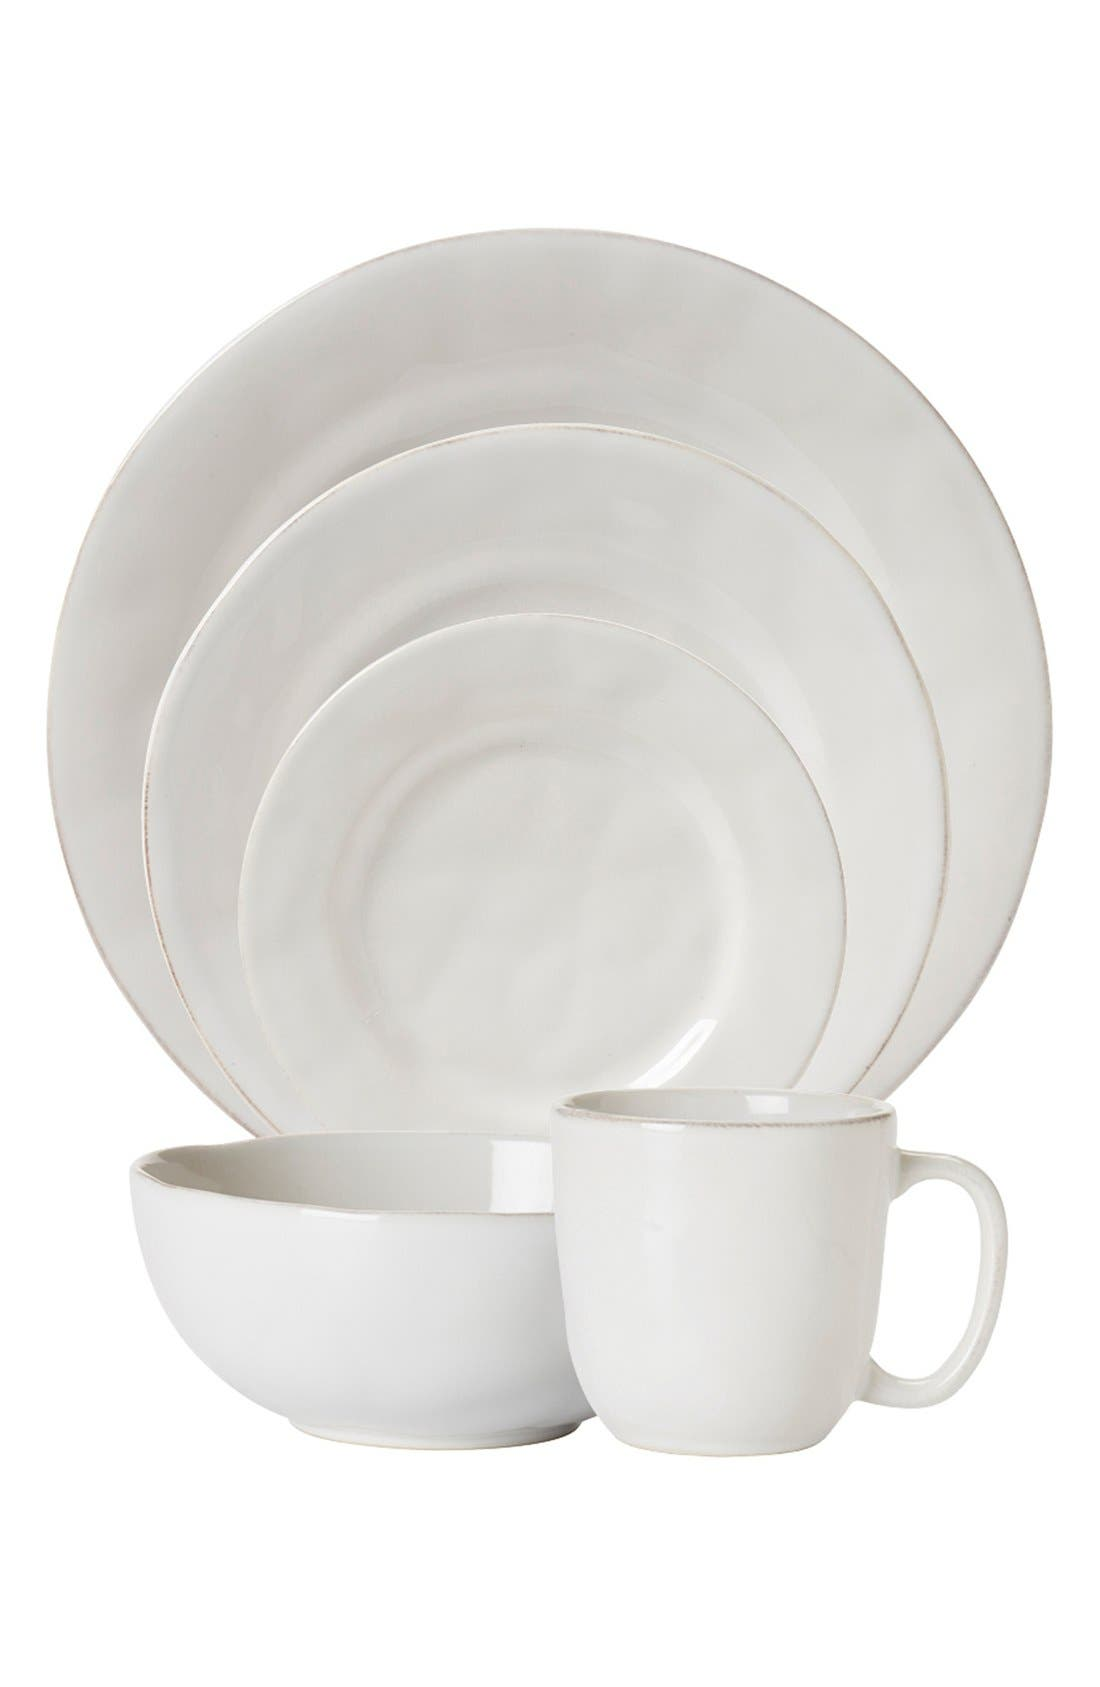 Juliska 'Puro' 5-Piece Dinnerware Place Setting